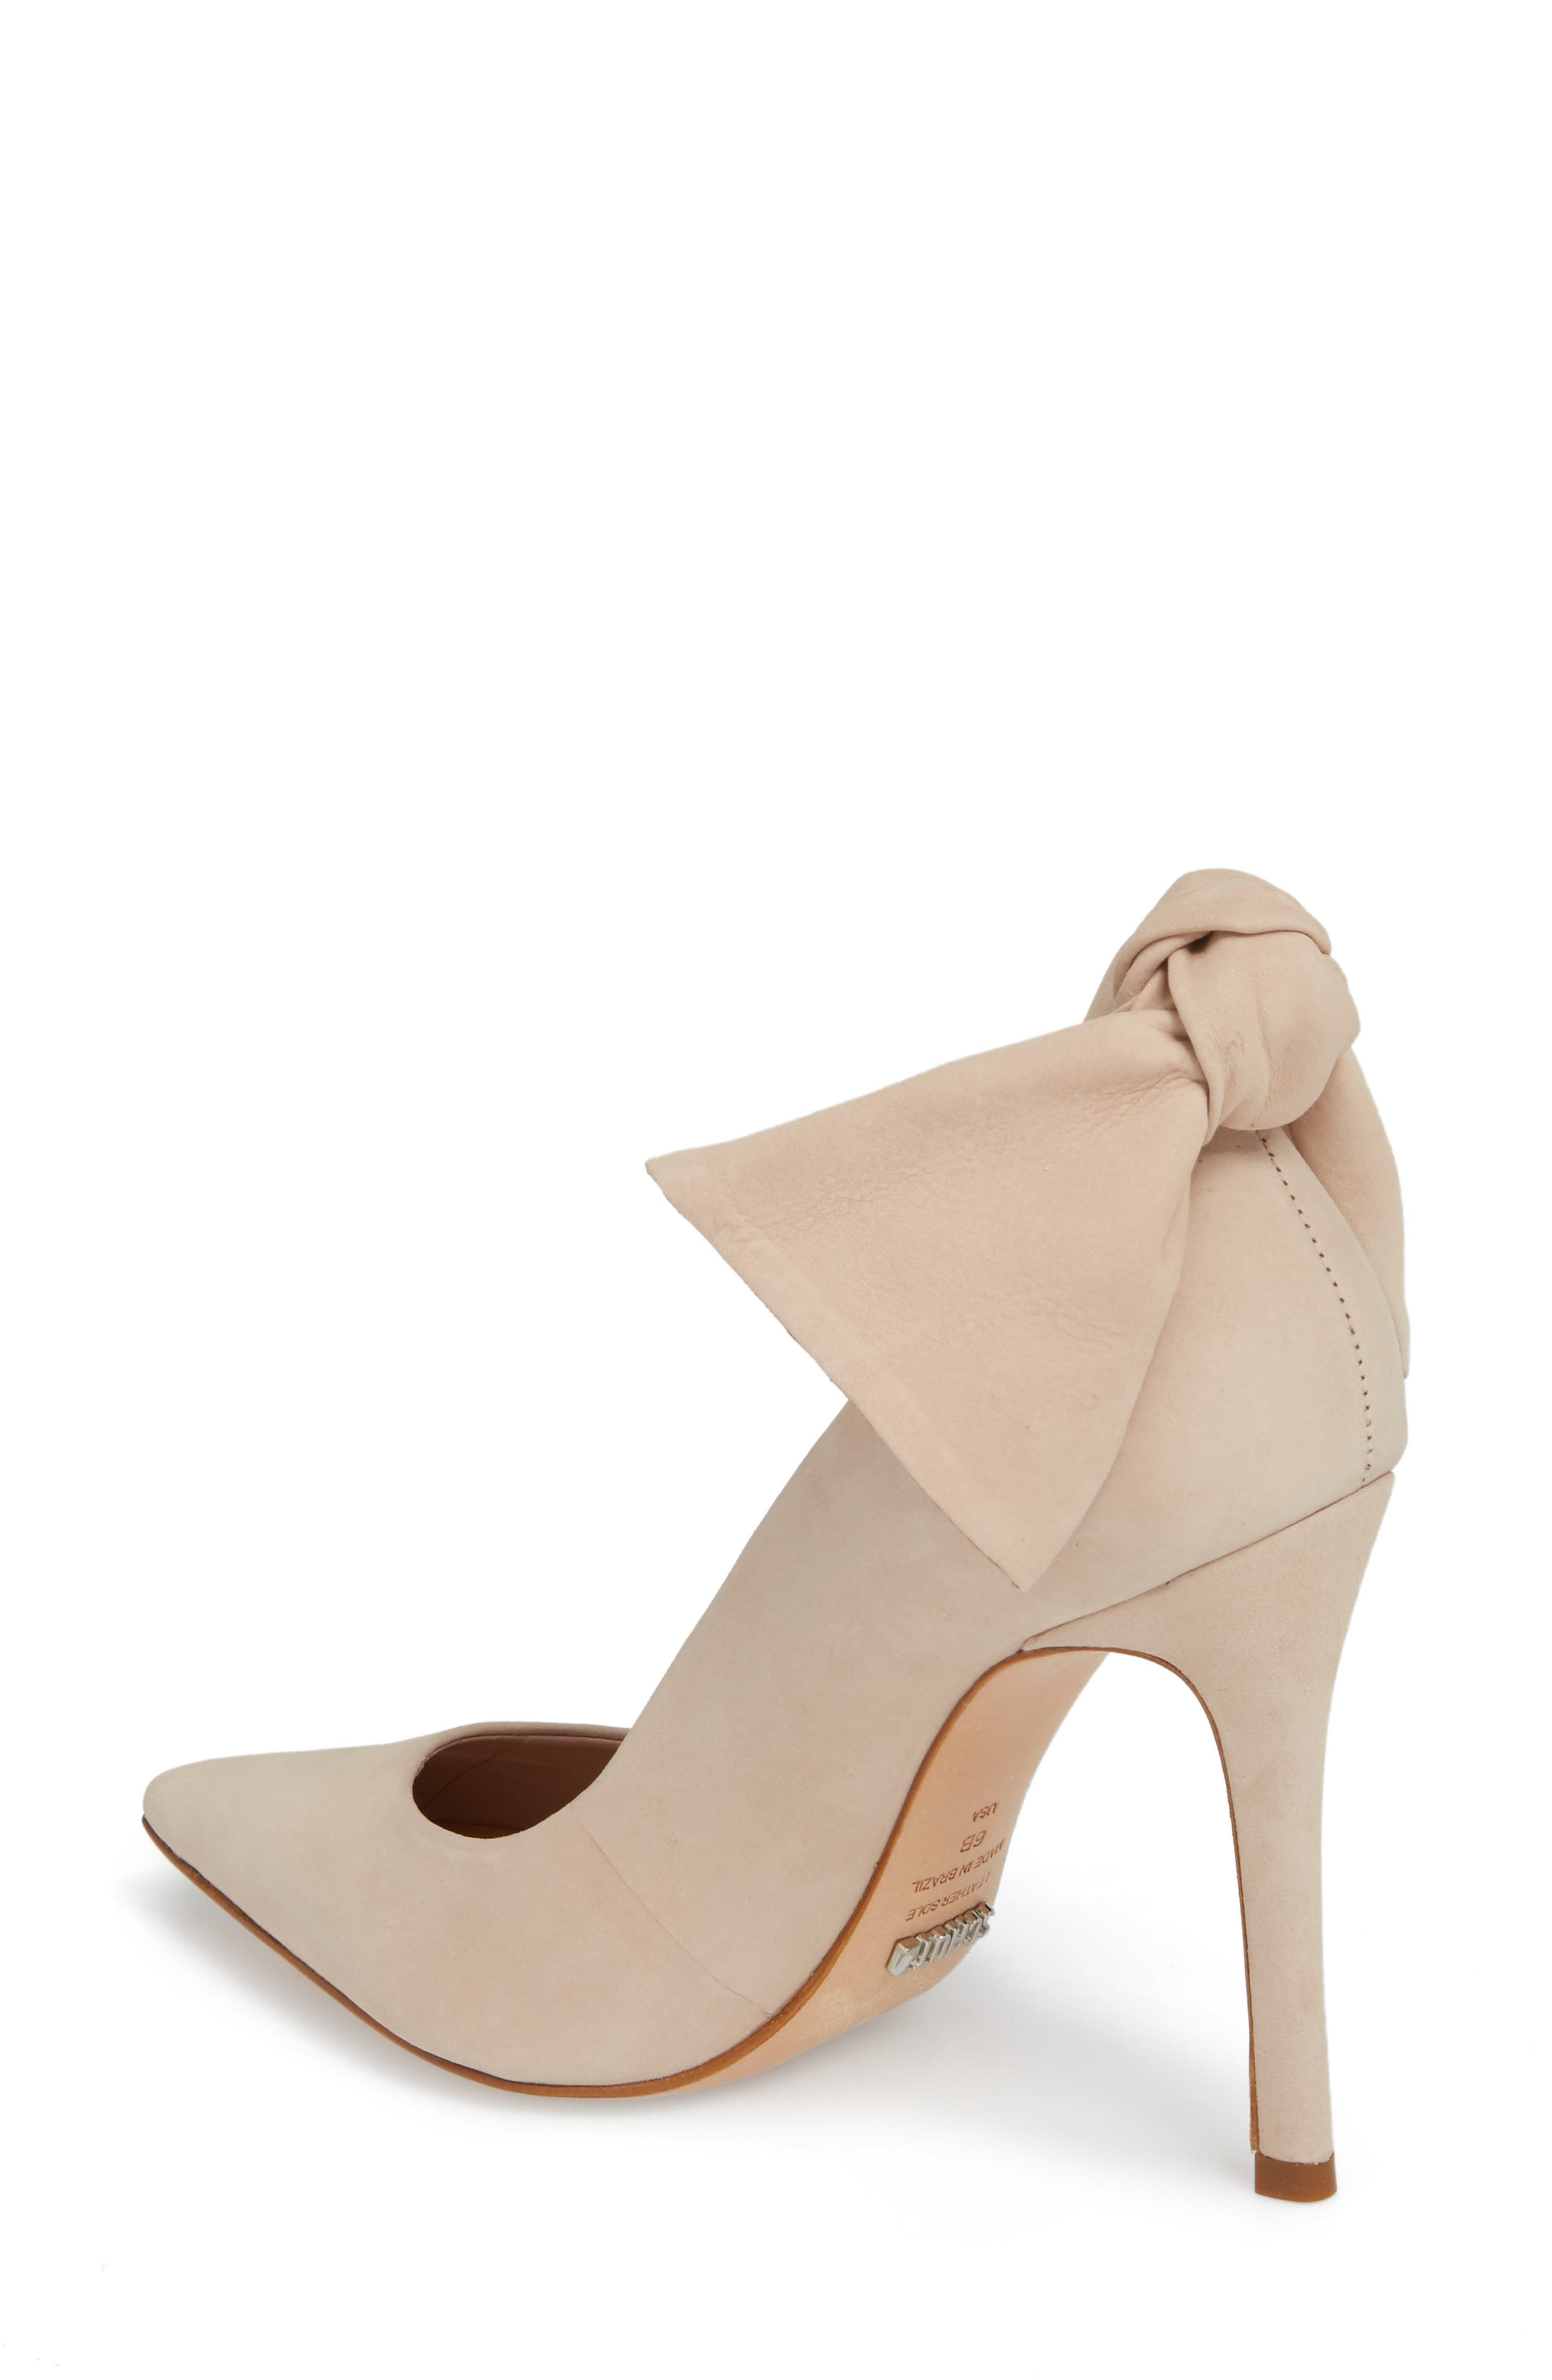 Blasiana Bow Pump,                             Alternate thumbnail 2, color,                             Bellini Leather